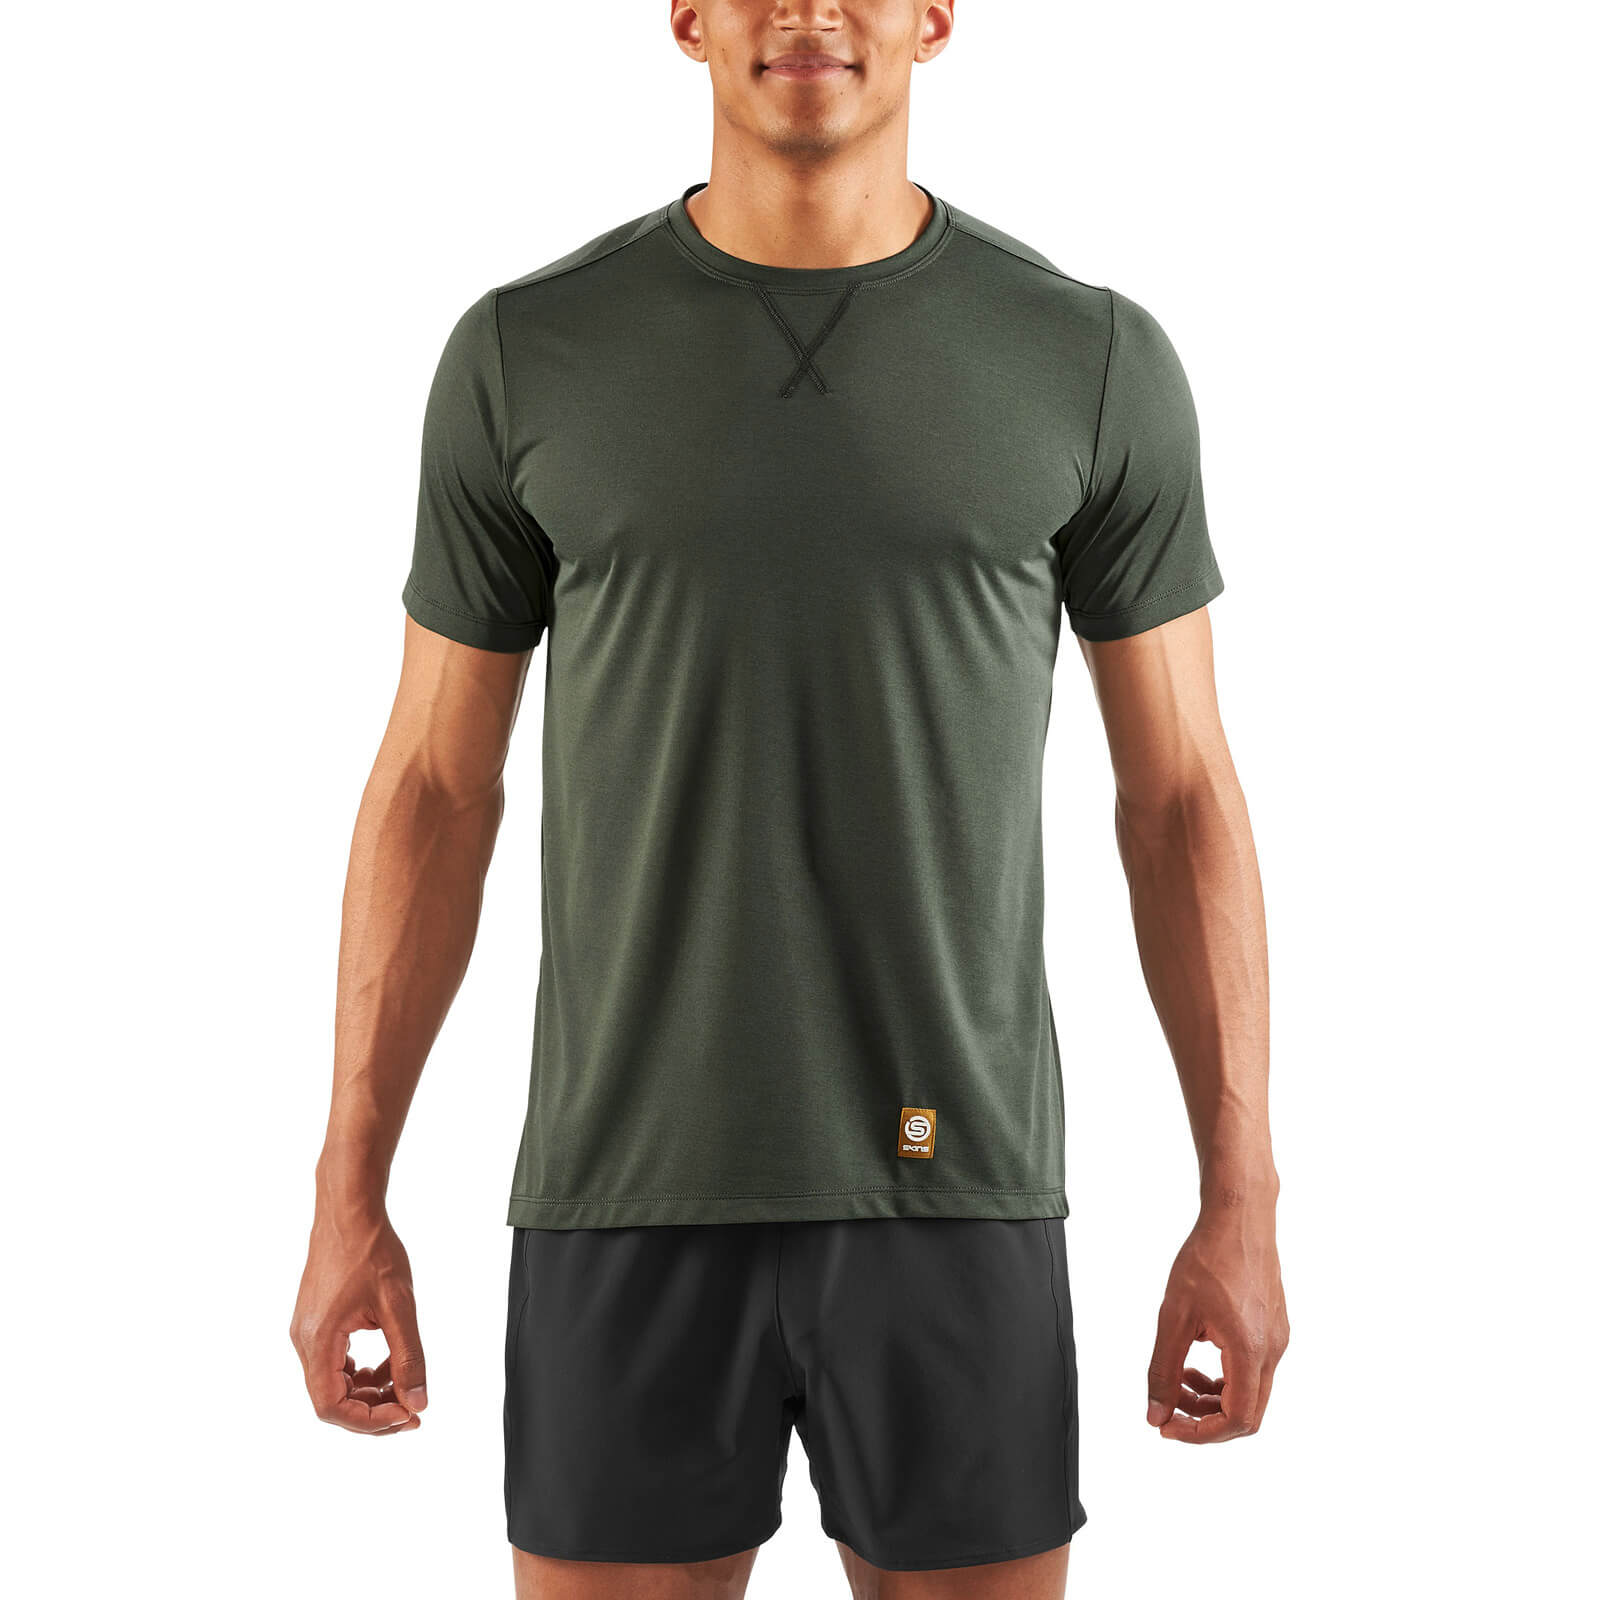 Skins Activewear Men